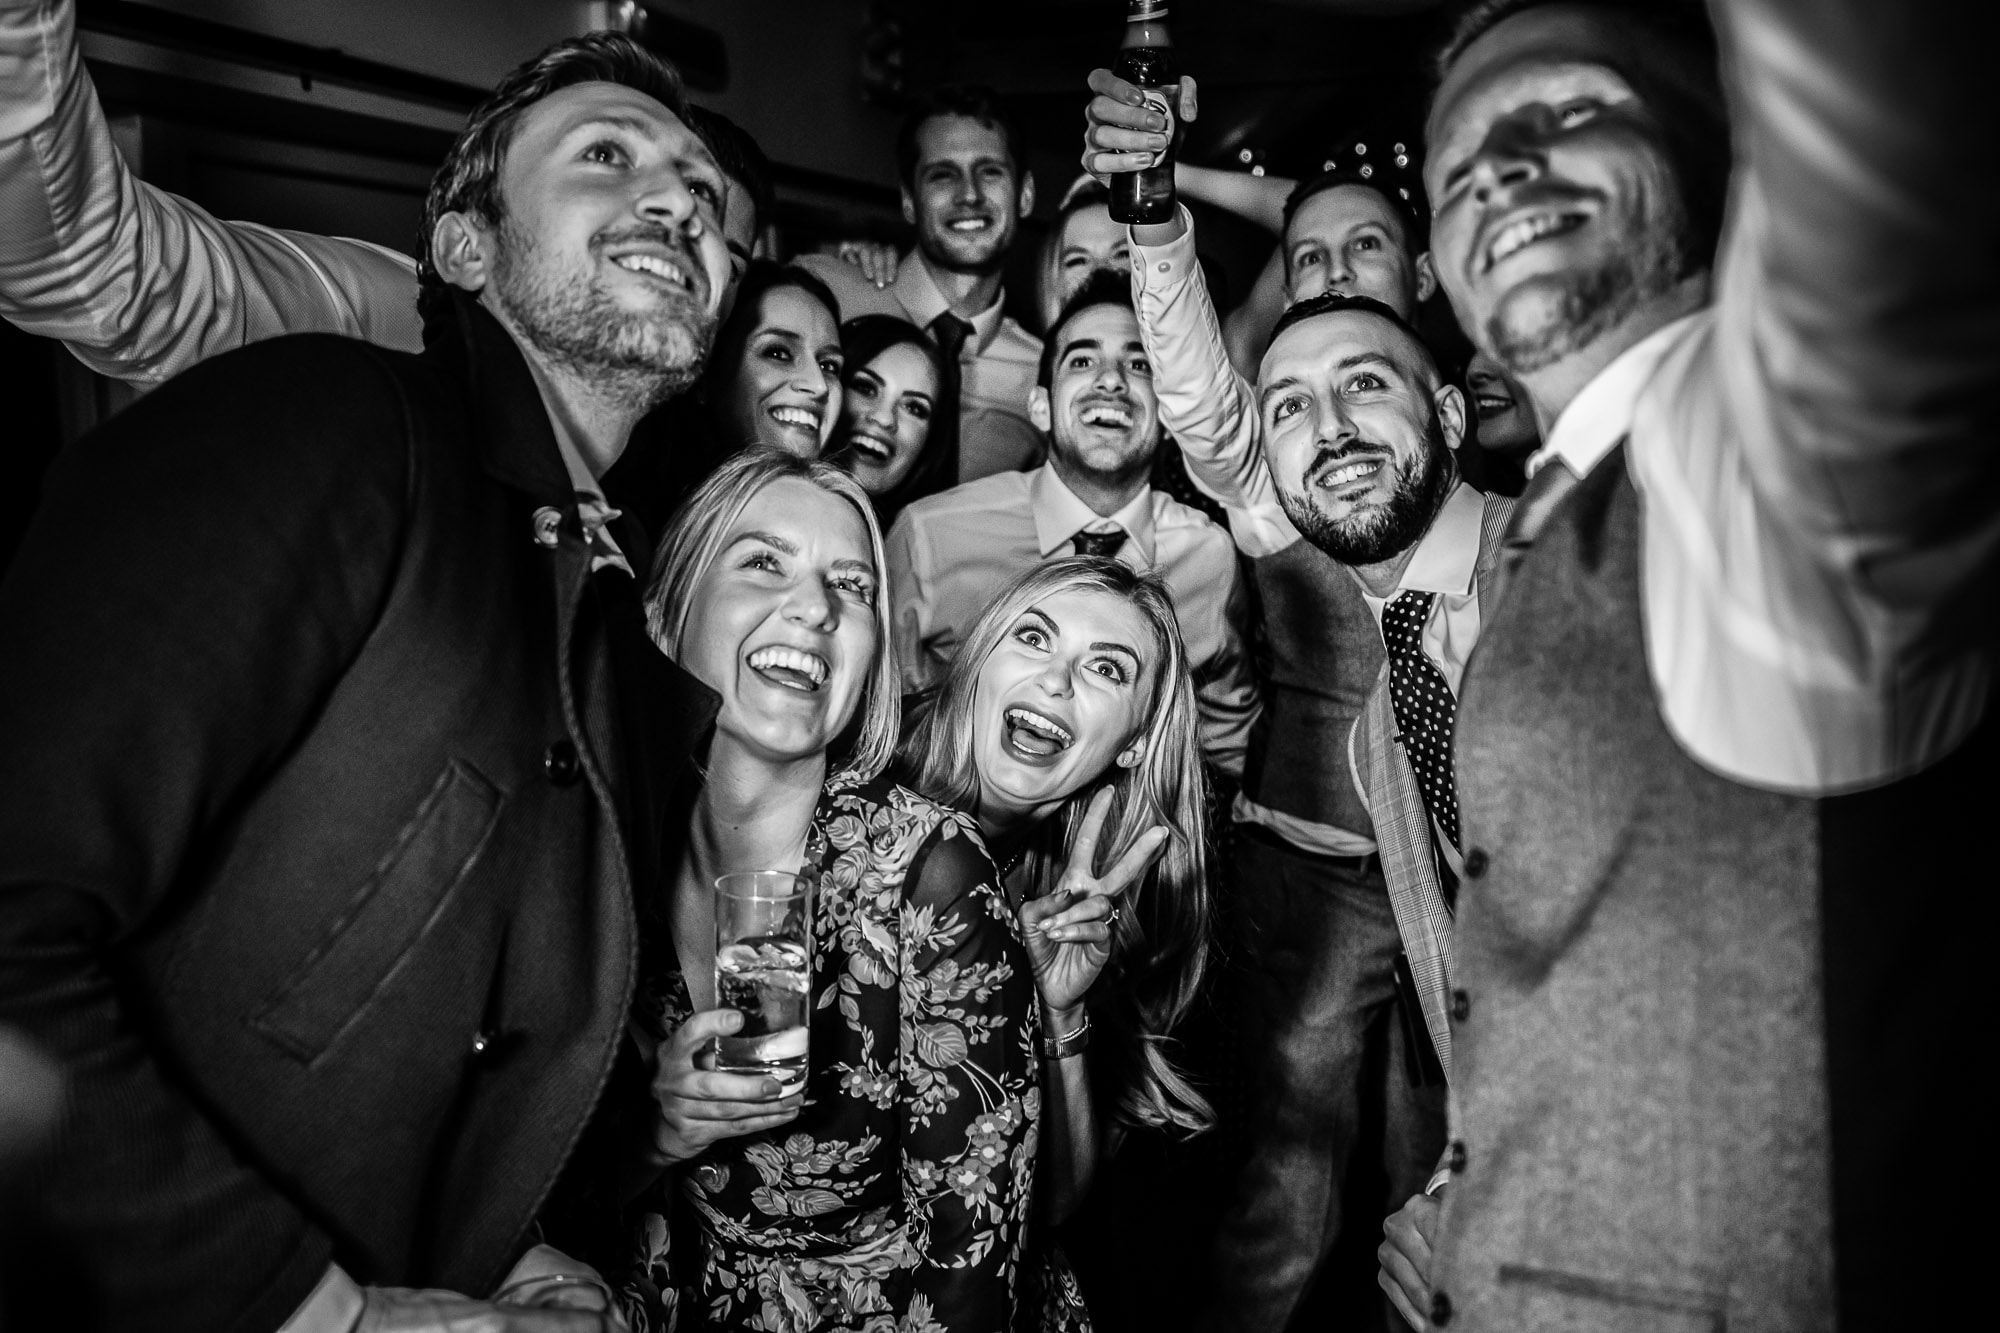 Farbridge Wedding - group selfie